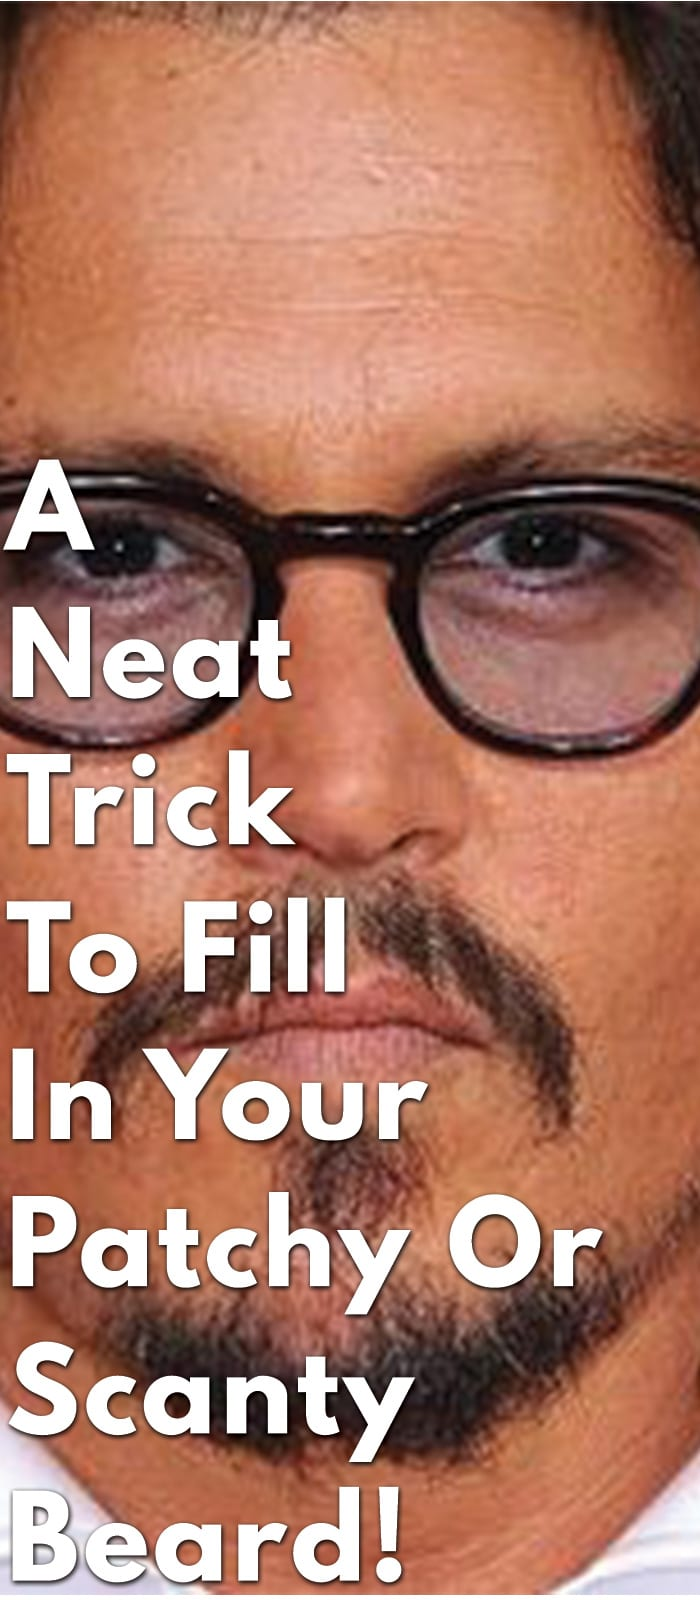 A-Neat-Trick-To-Fill-In-Your-Patchy-or-Scanty-Beard!.